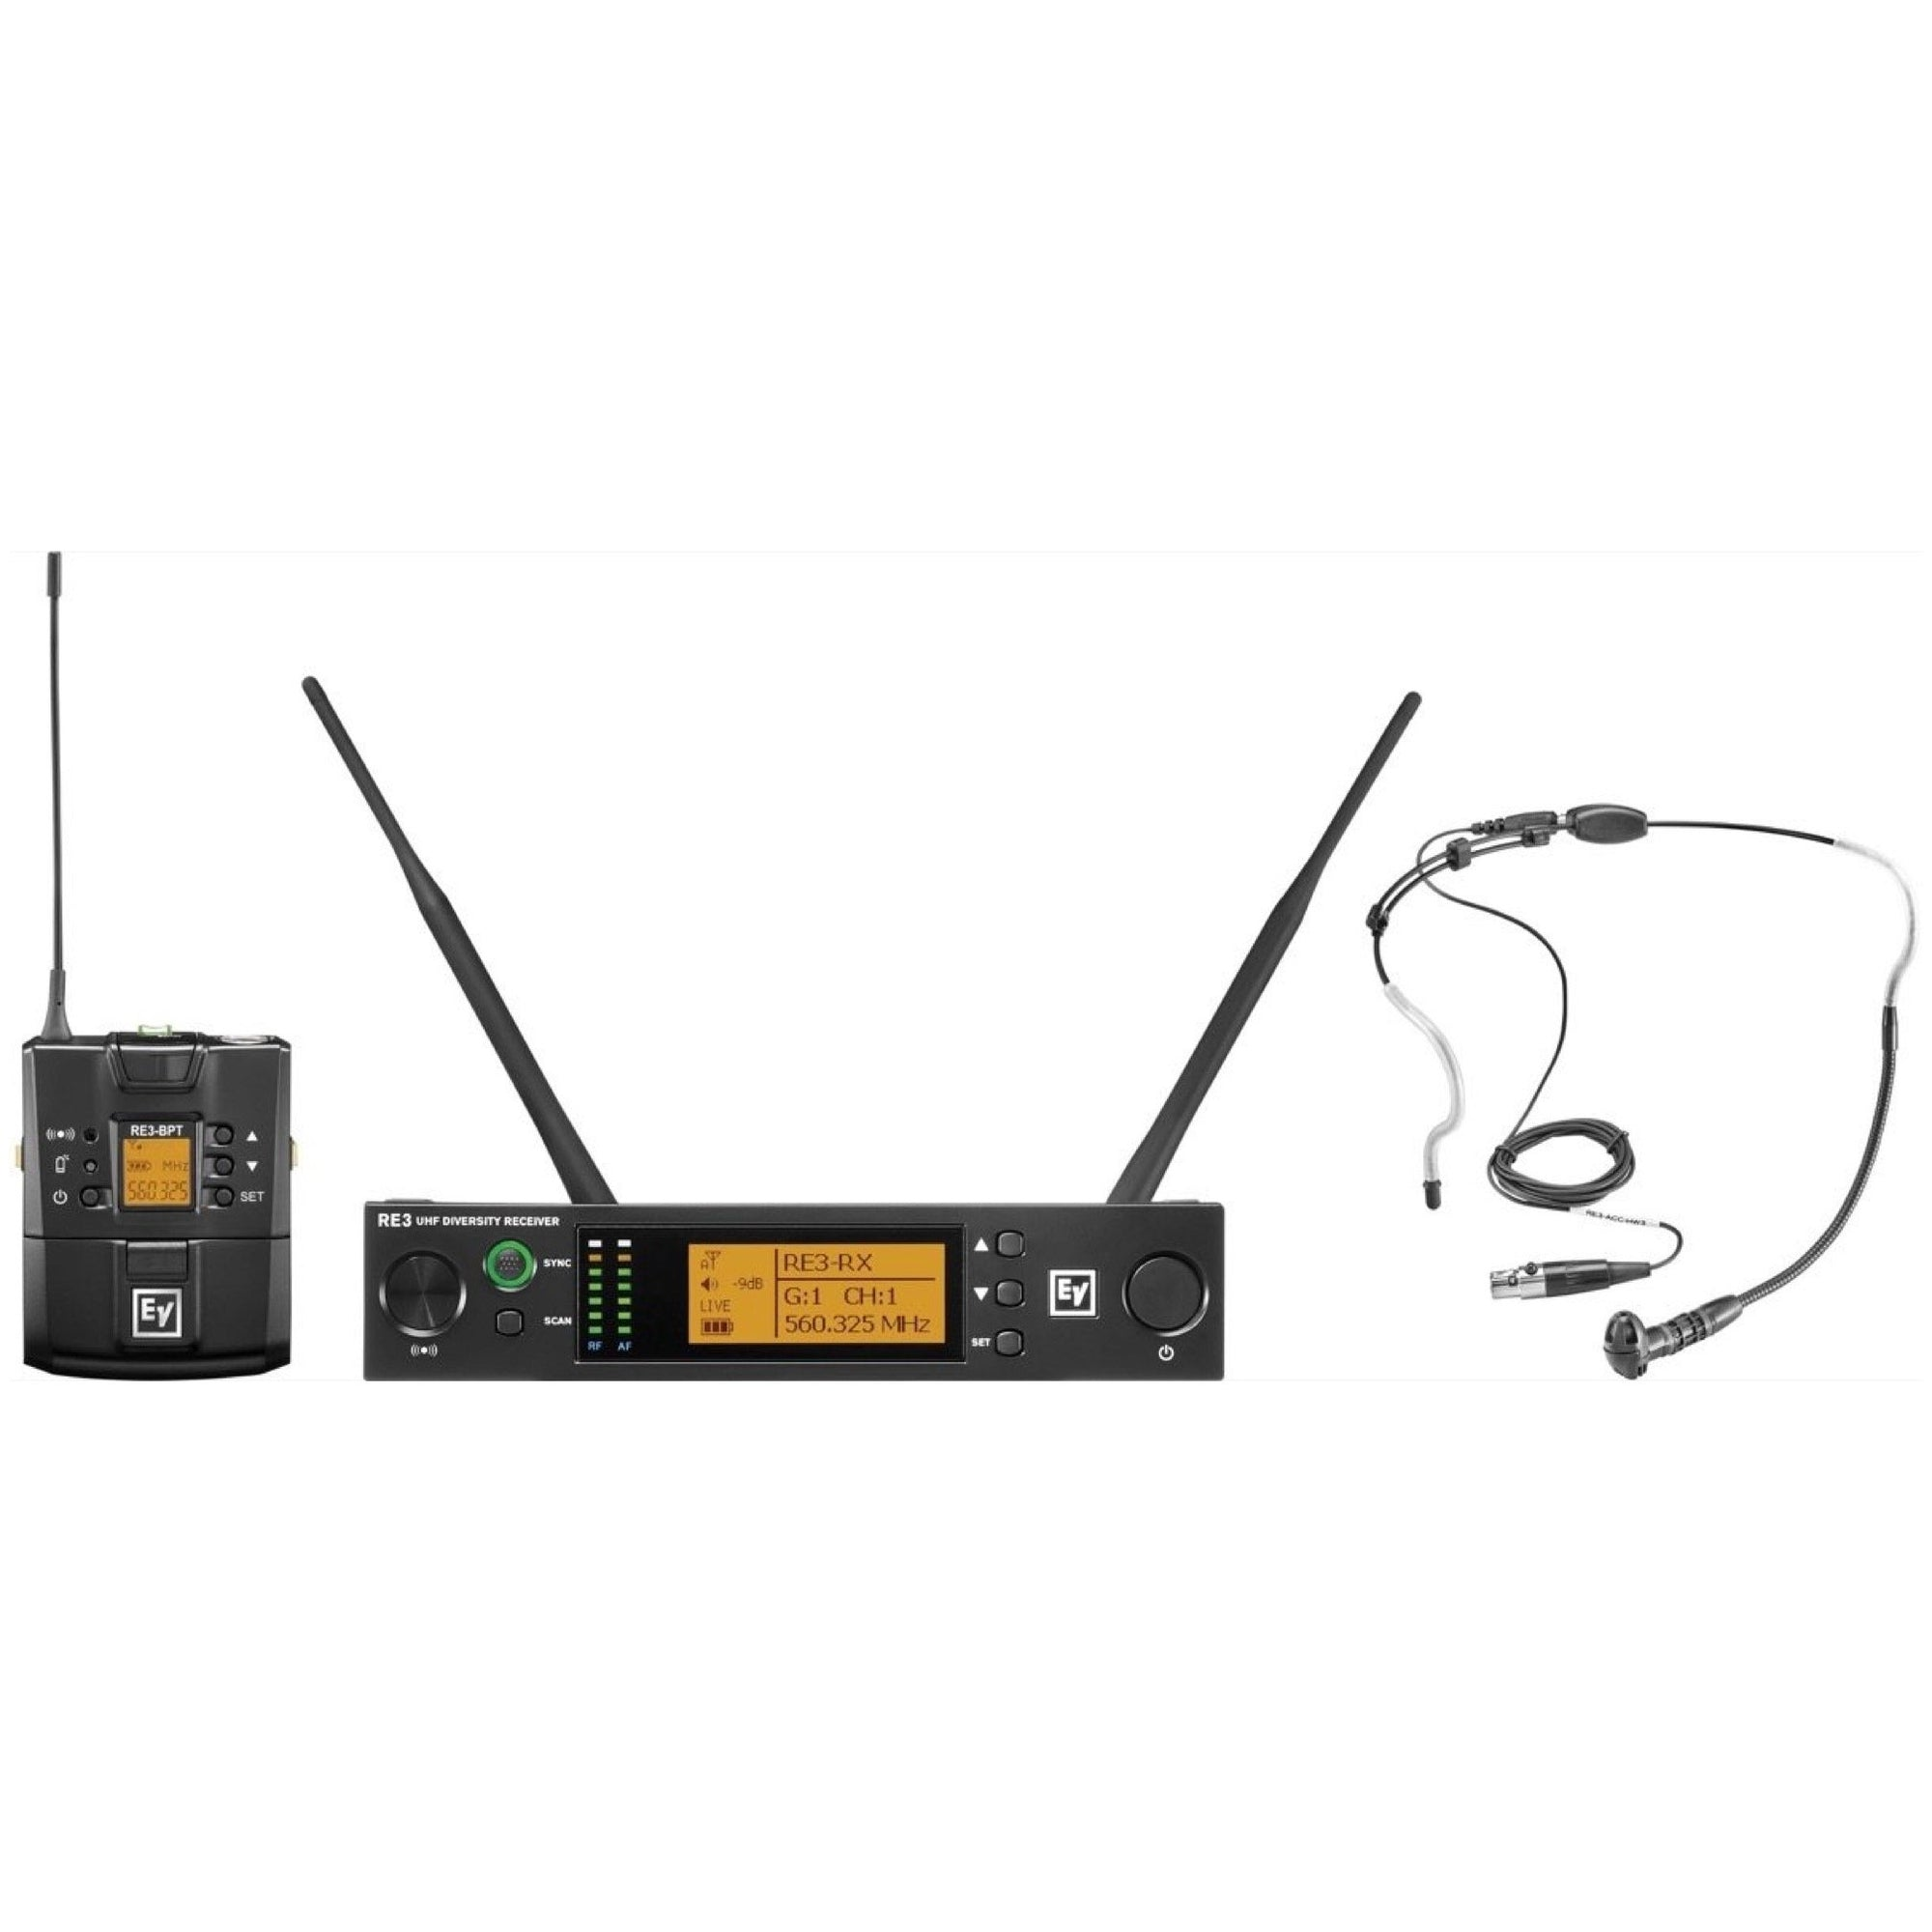 Electro-Voice RE3-BPHW Headset Wireless Microphone System, Band 5L (488-524 MHz)